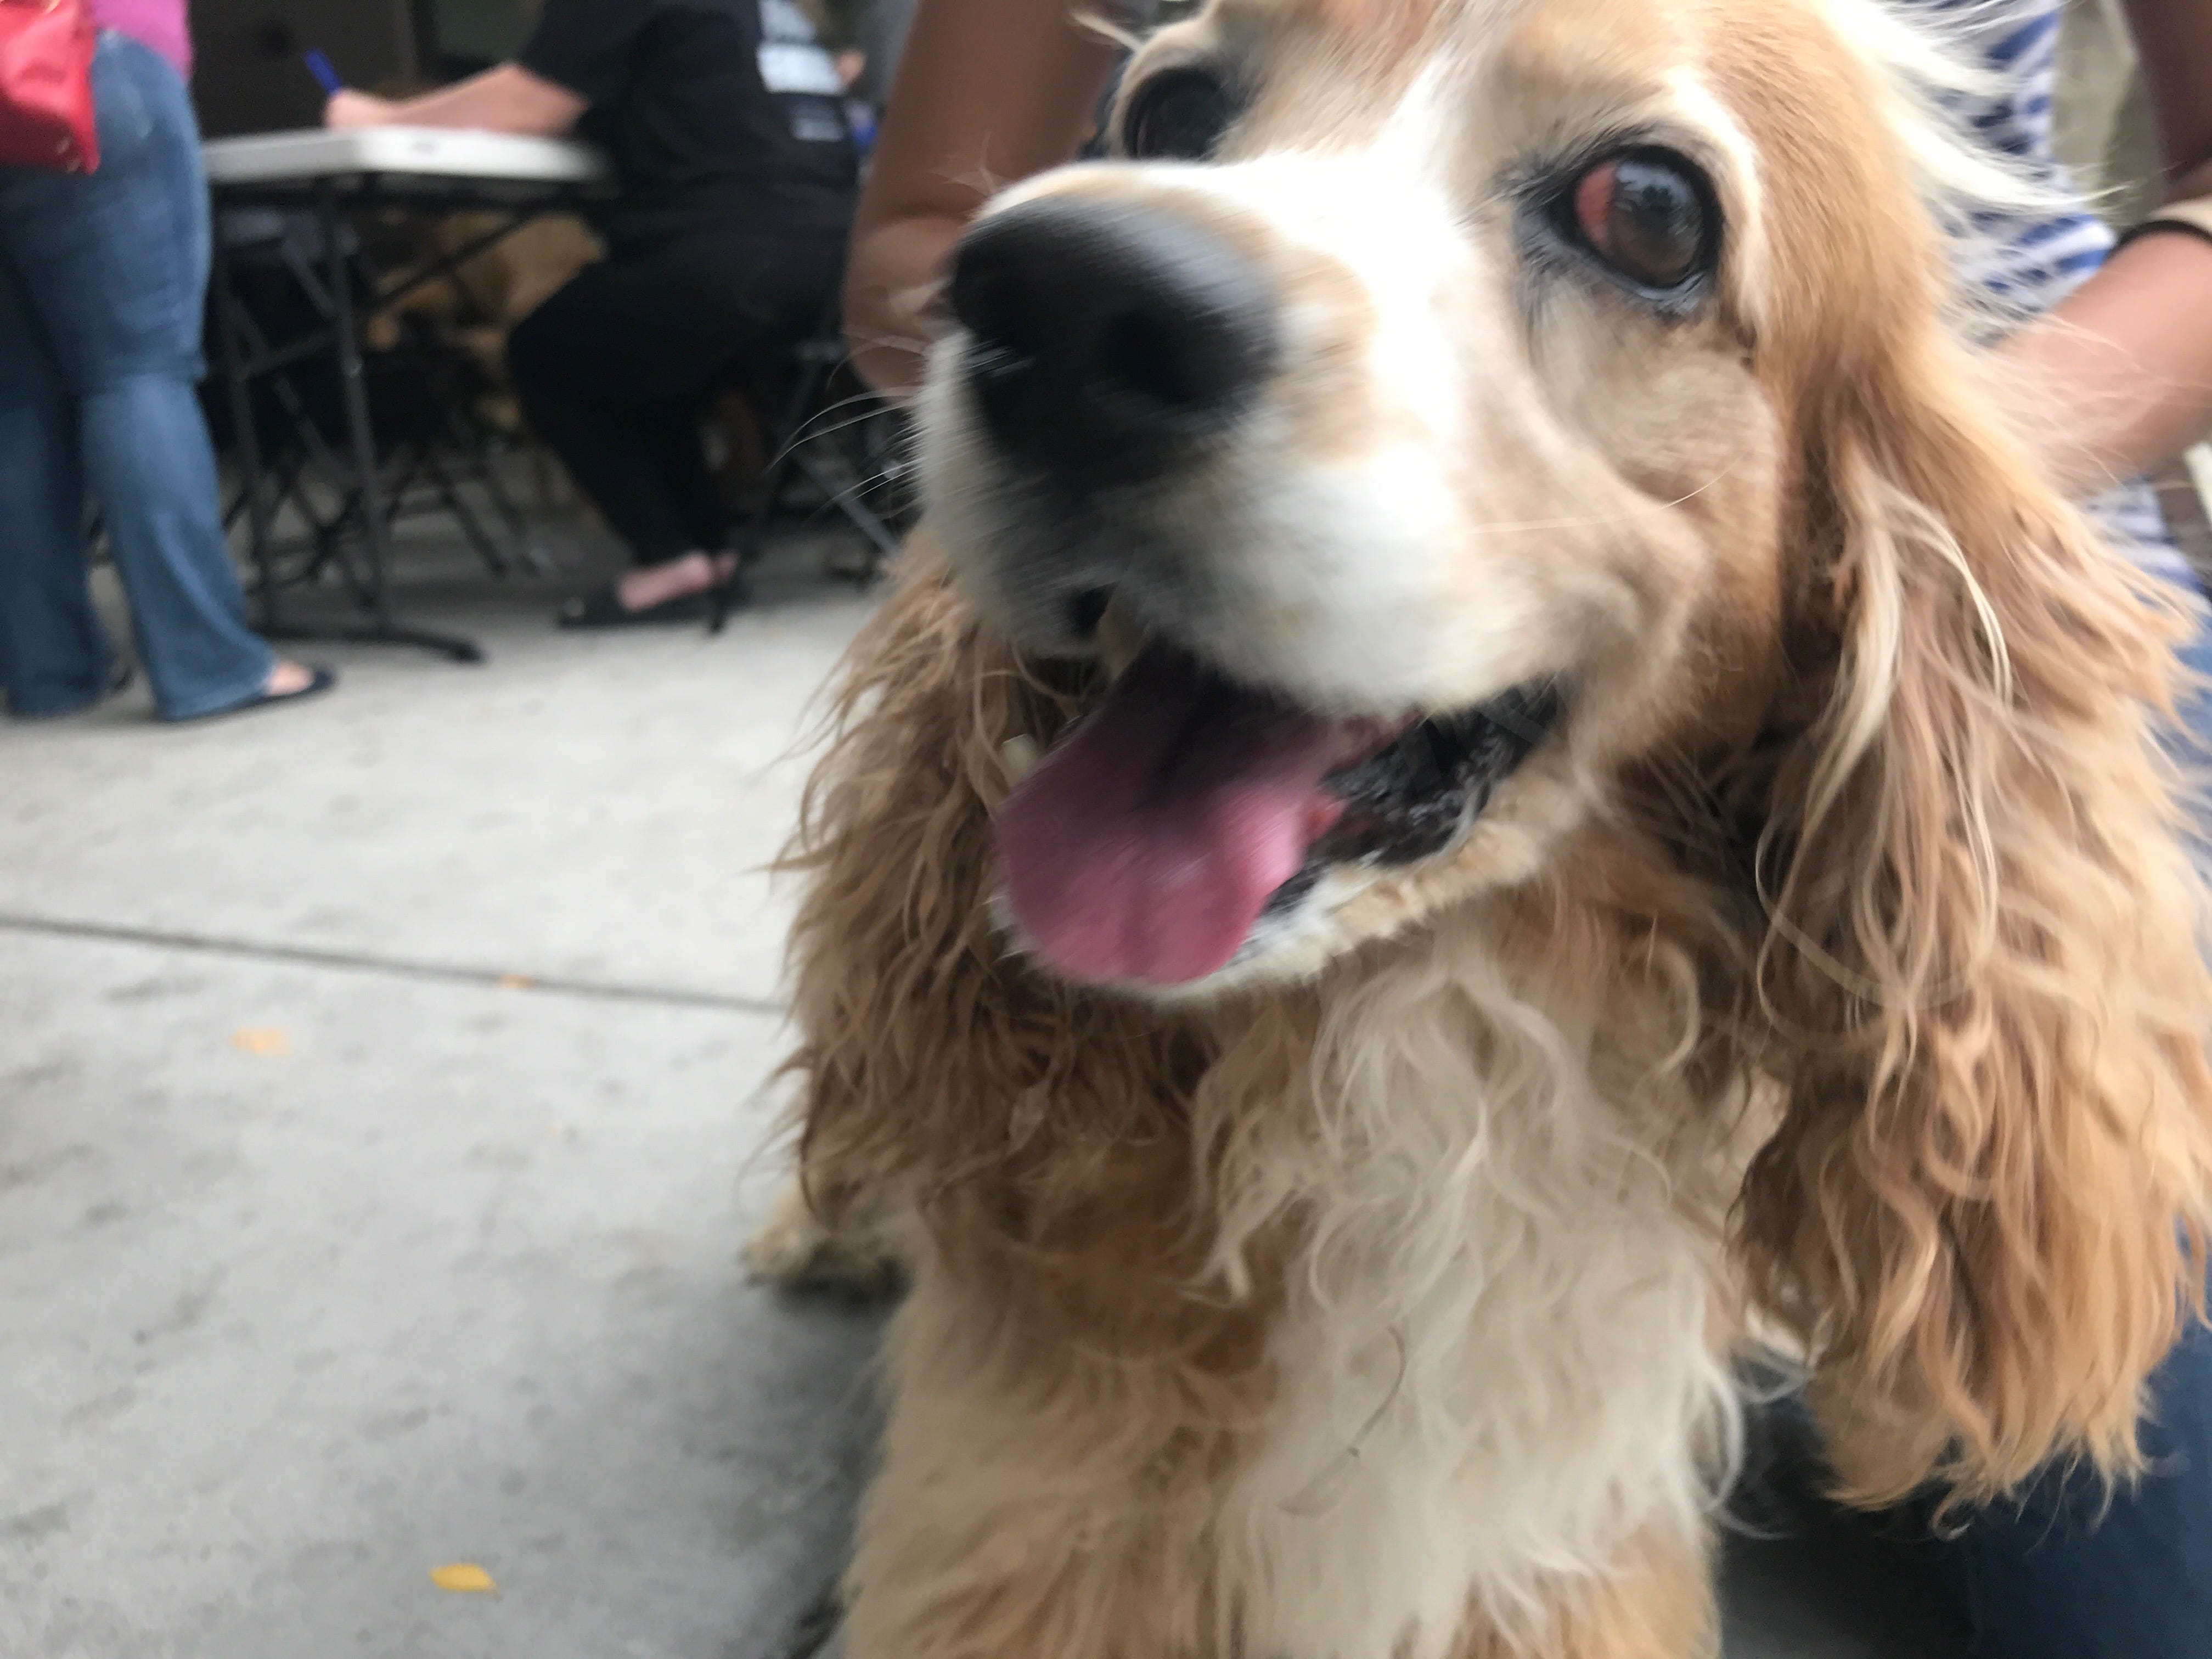 A free event at Bark Avenue in Mesa offered nearly 150 dogs free vaccinations, microchips and other services on Saturday, May 11, 2019.